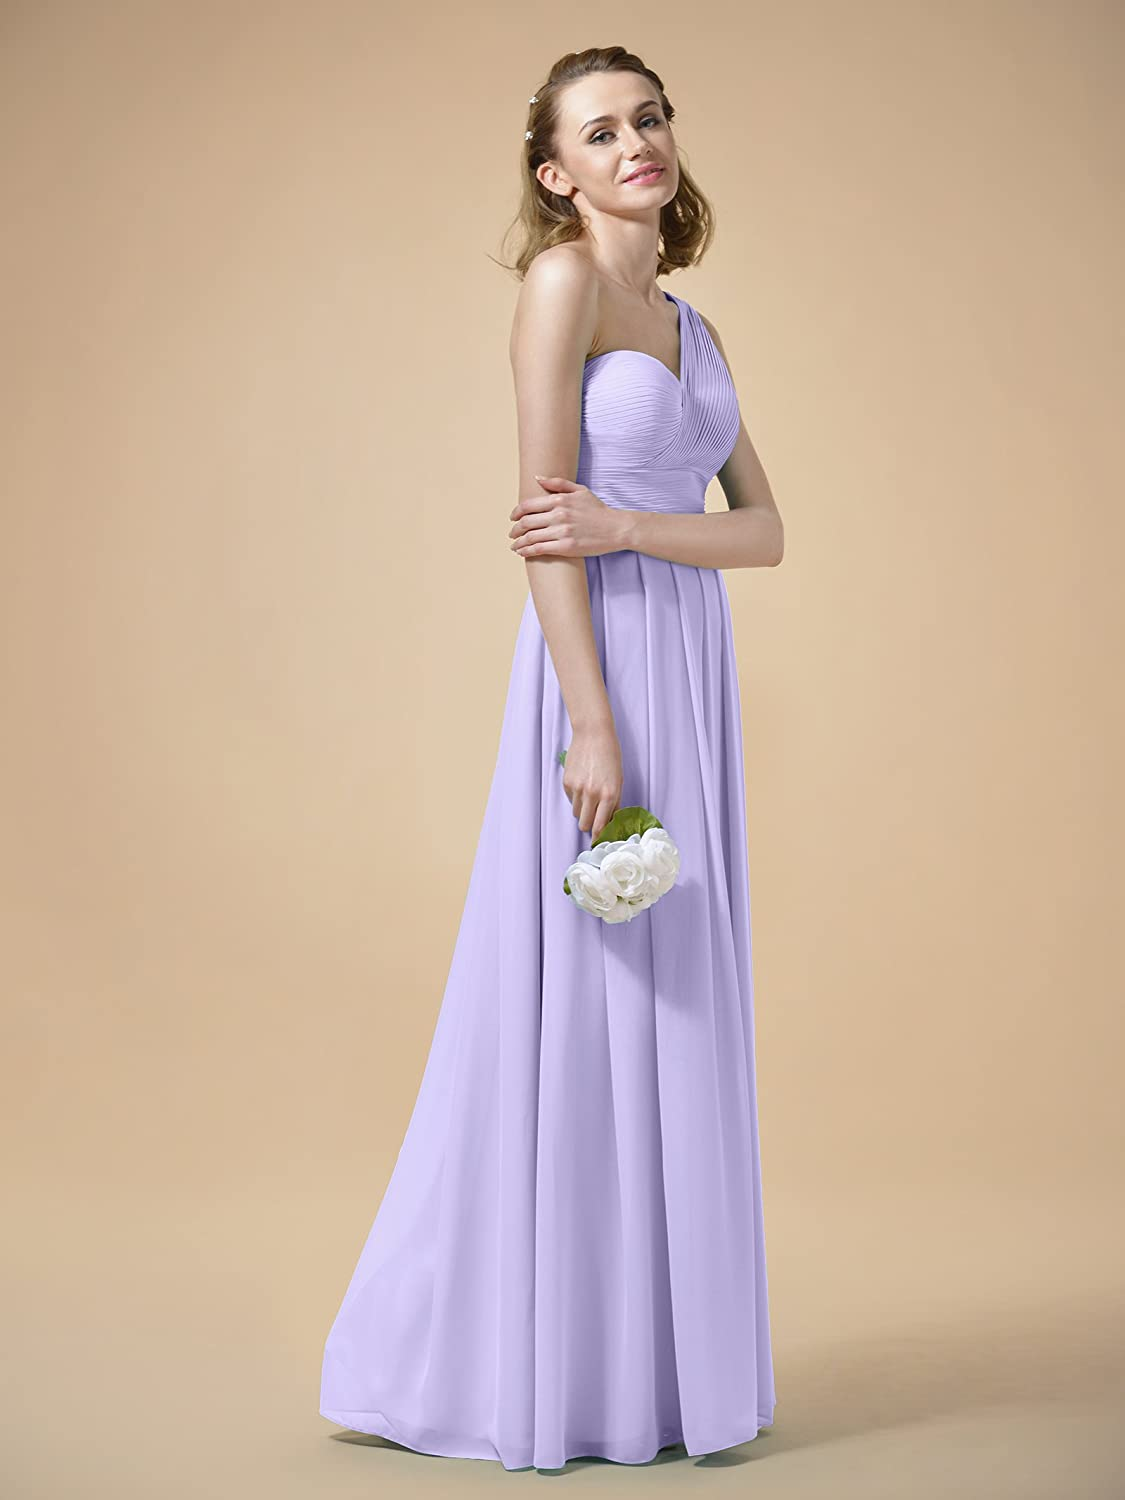 AWEI Bridal Maxi Bridesmaid Dress in One Shoulder Design Formal Pleated Evening Gown Womens Ruched Prom Dress: Amazon.co.uk: Clothing